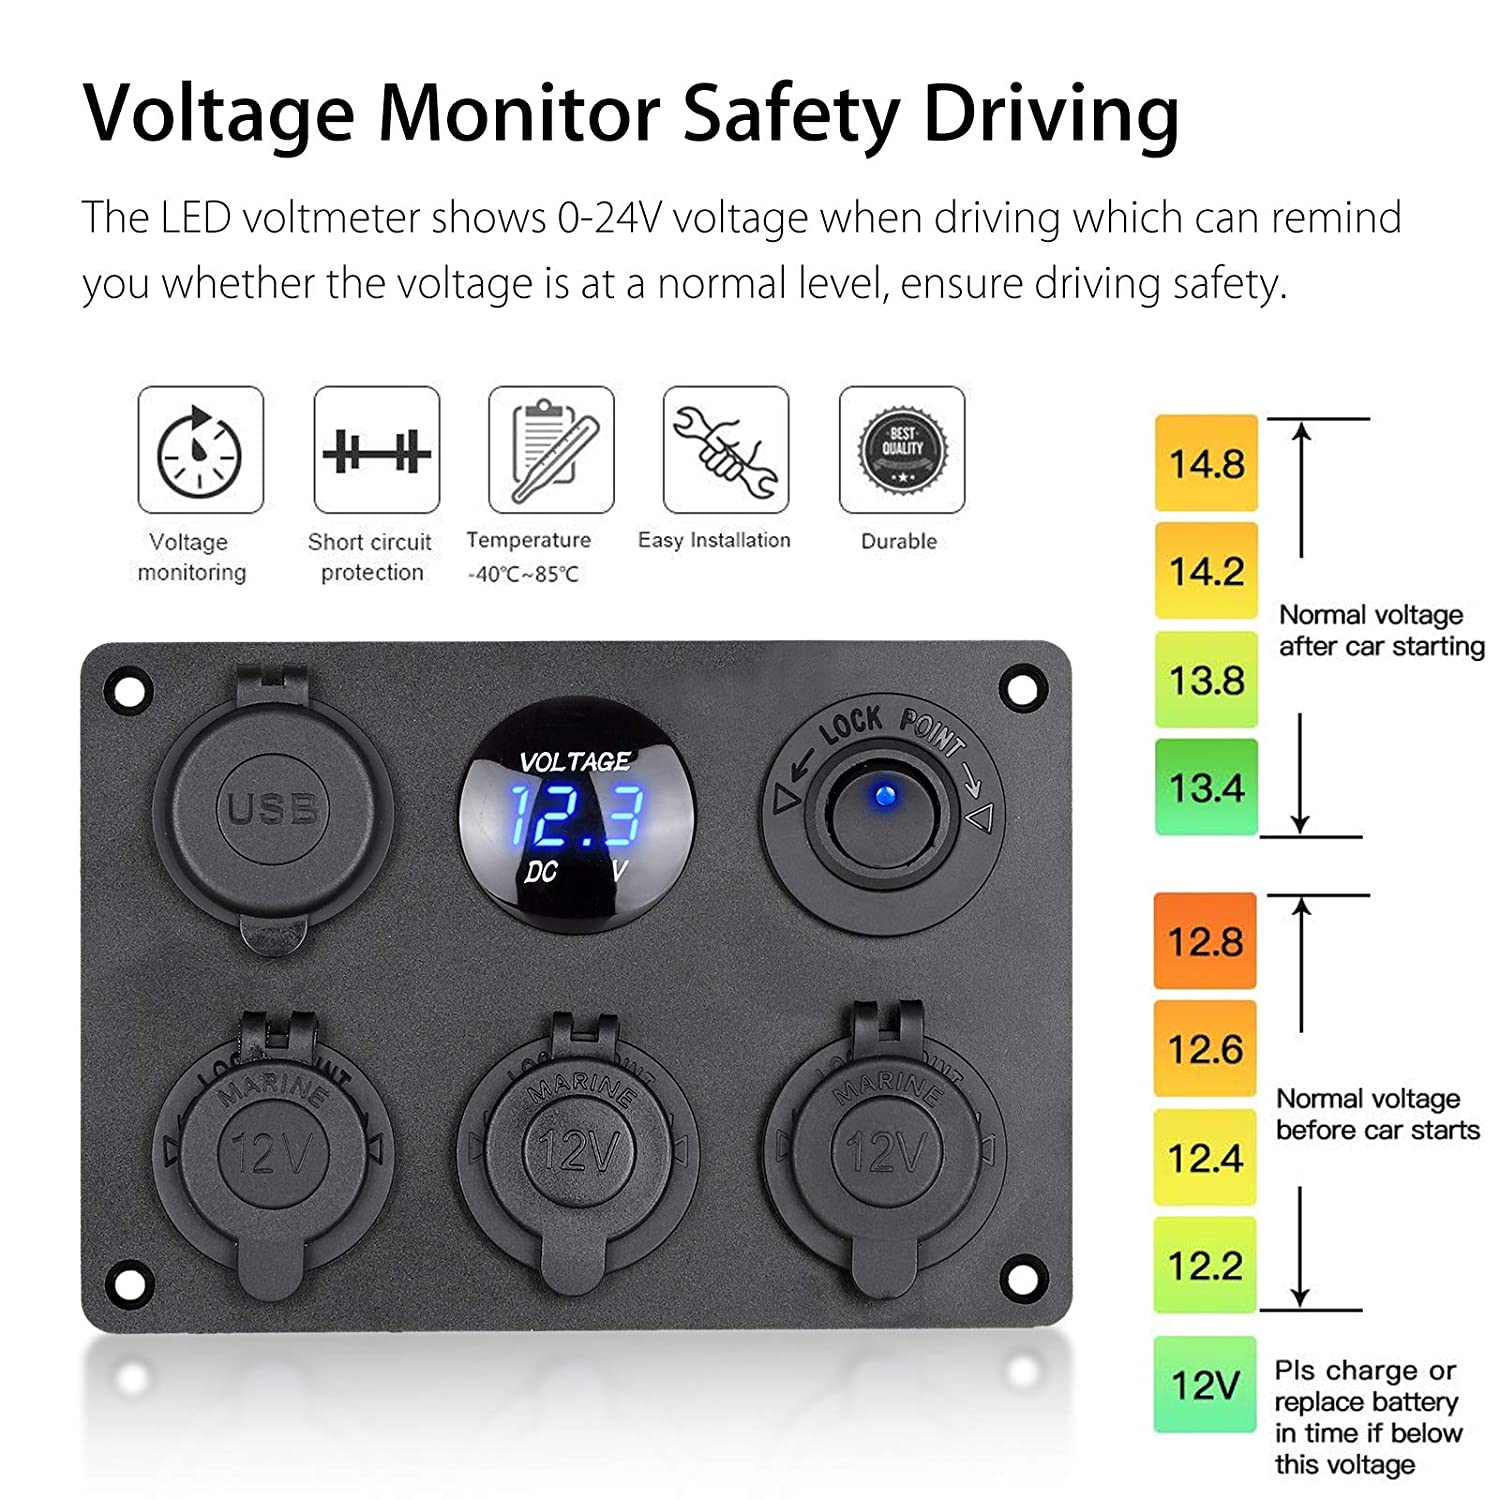 Illuminated Toggle Rocker Switch for RV Truck Marine Boat Trailer Vehicles Yacht SUV Blue LED Voltmeter with 12V Power Outlet EEEKit 6 in 1 Multi-function Waterproof Panel Dual USB Socket Charger